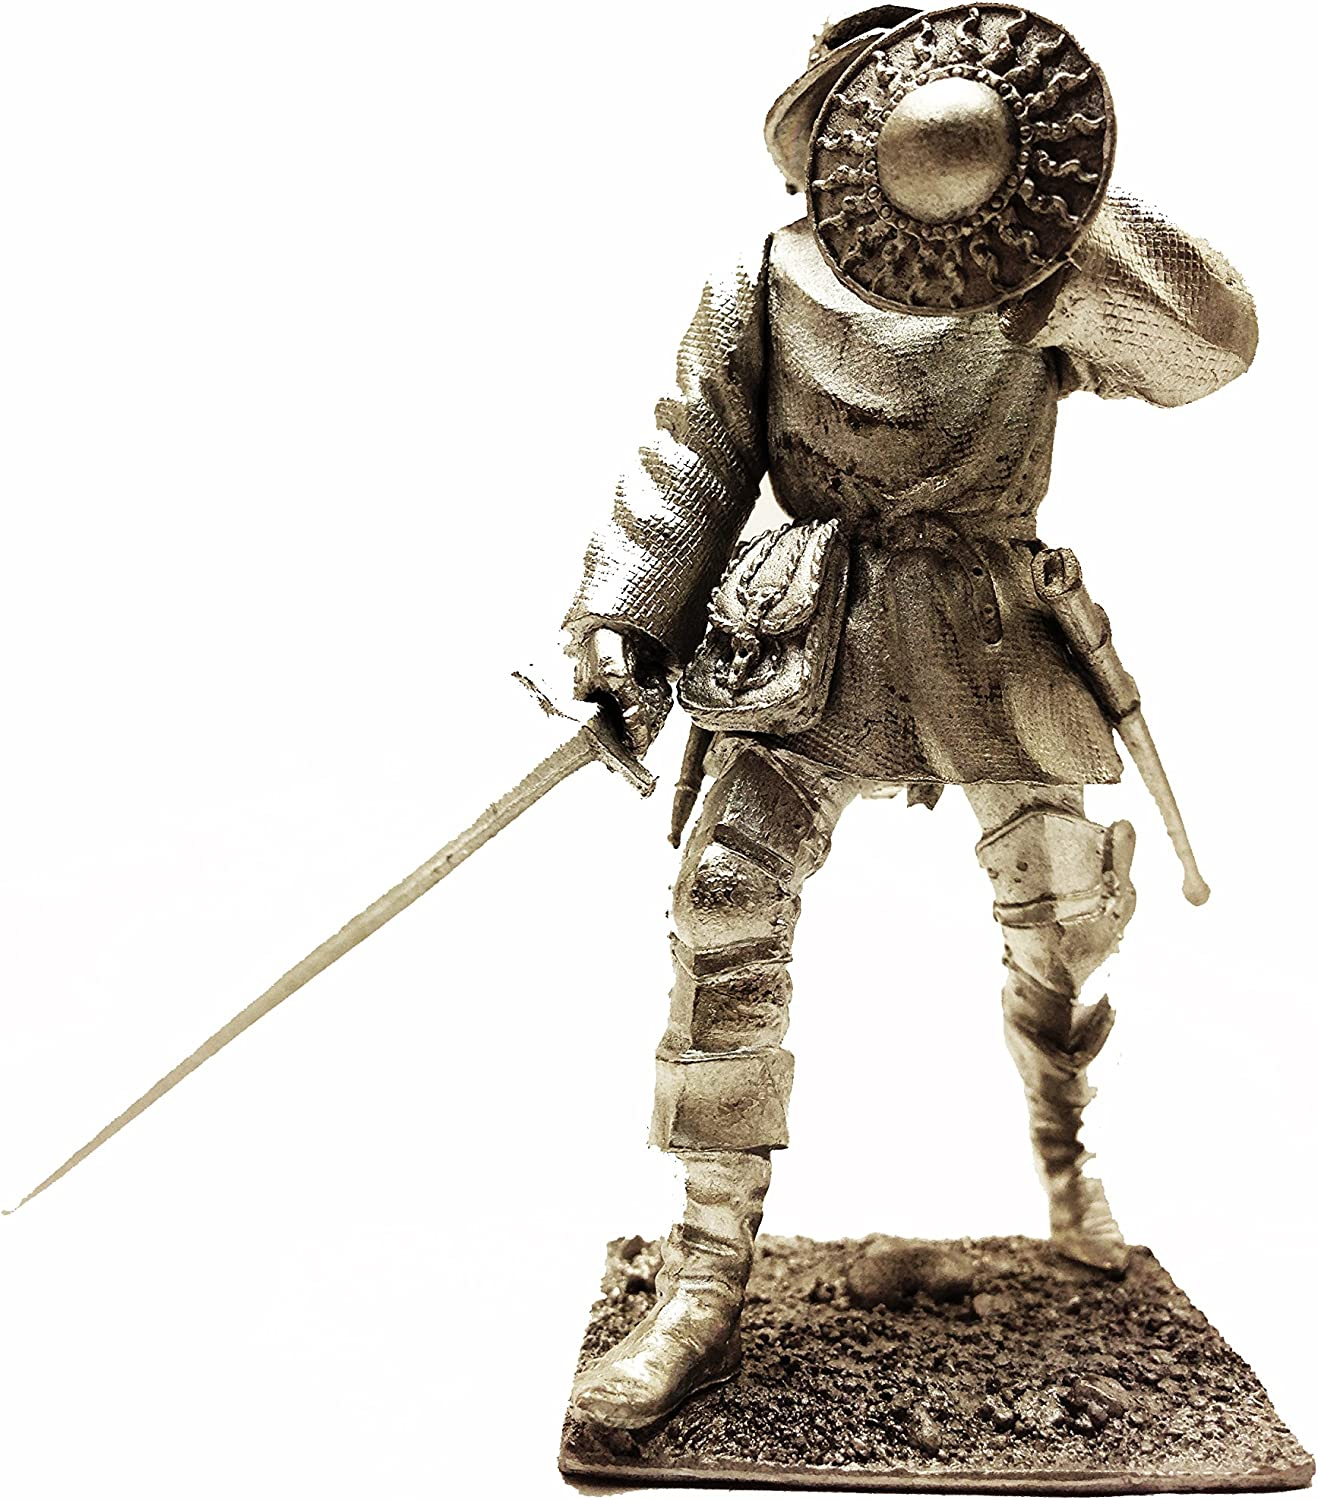 European Infantry 15 Century Skillful Soldier Tin Metal 54mm Action Figures Toy Soldiers Size 1 32 Scale for Home Décor Accents Collectible Figurines Item  C5343.6